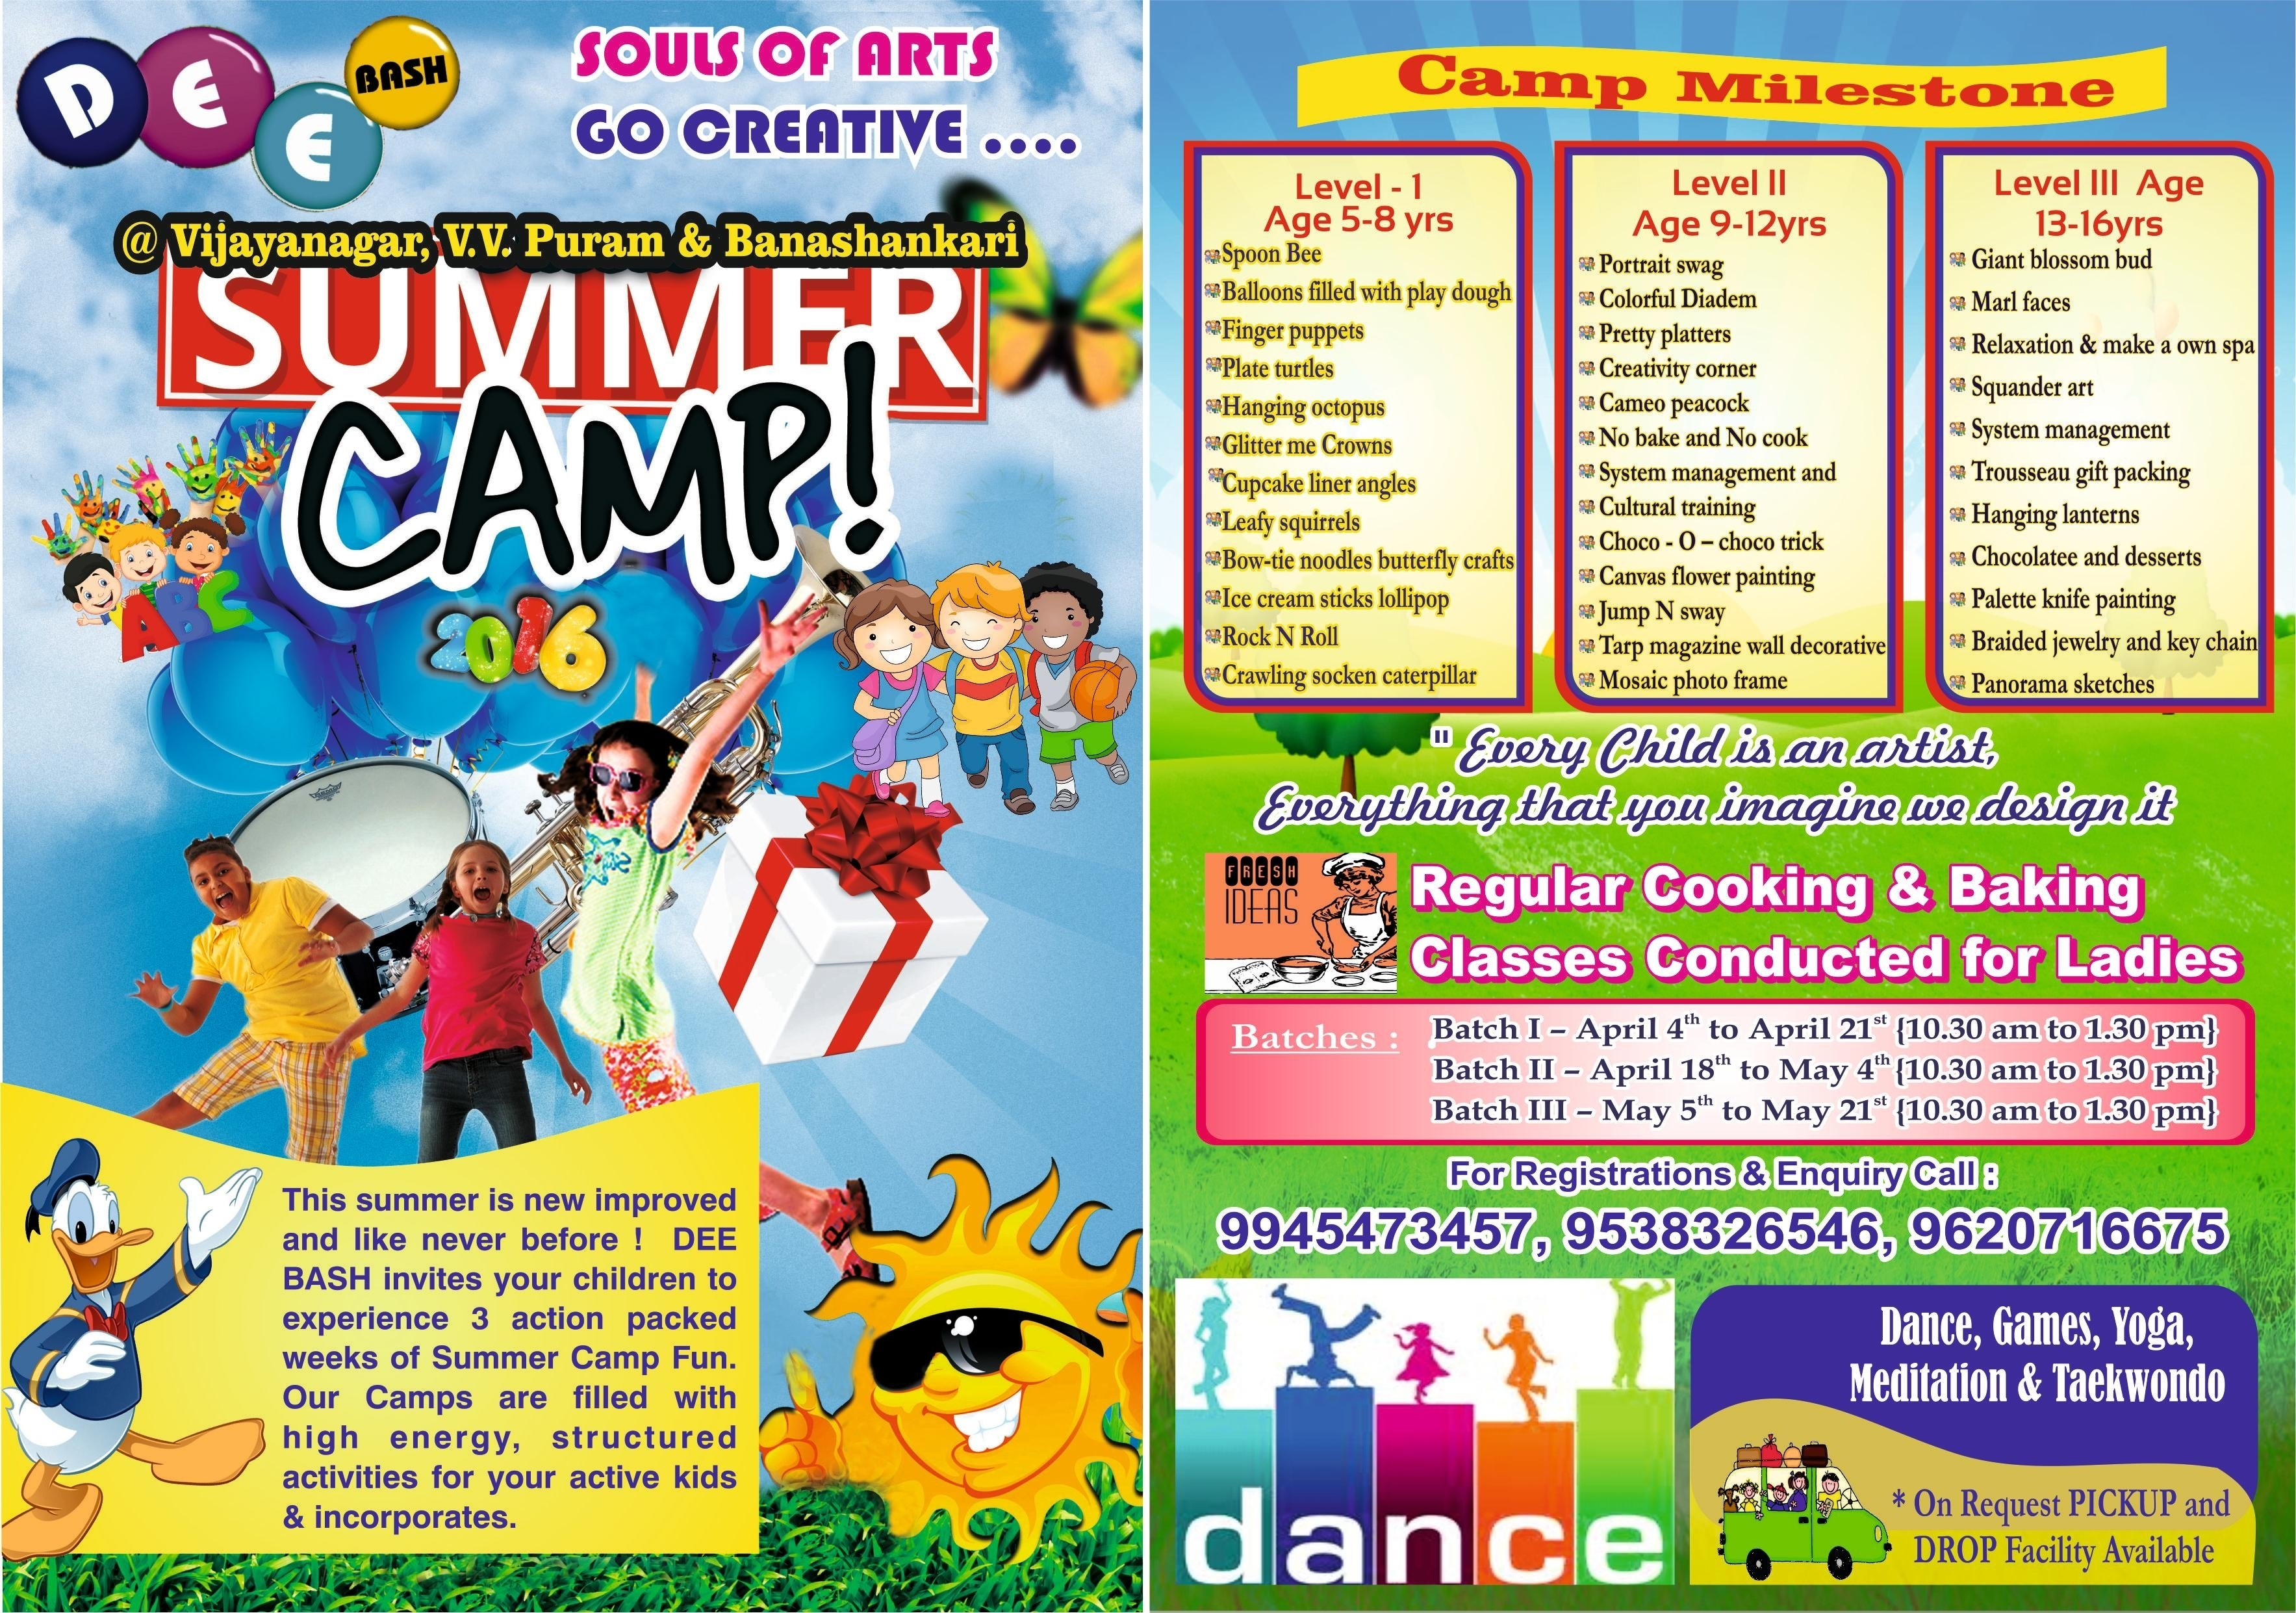 10 Cute Summer Camp Ideas For Kids deebash summer camp at vijayanagar bangalore events high